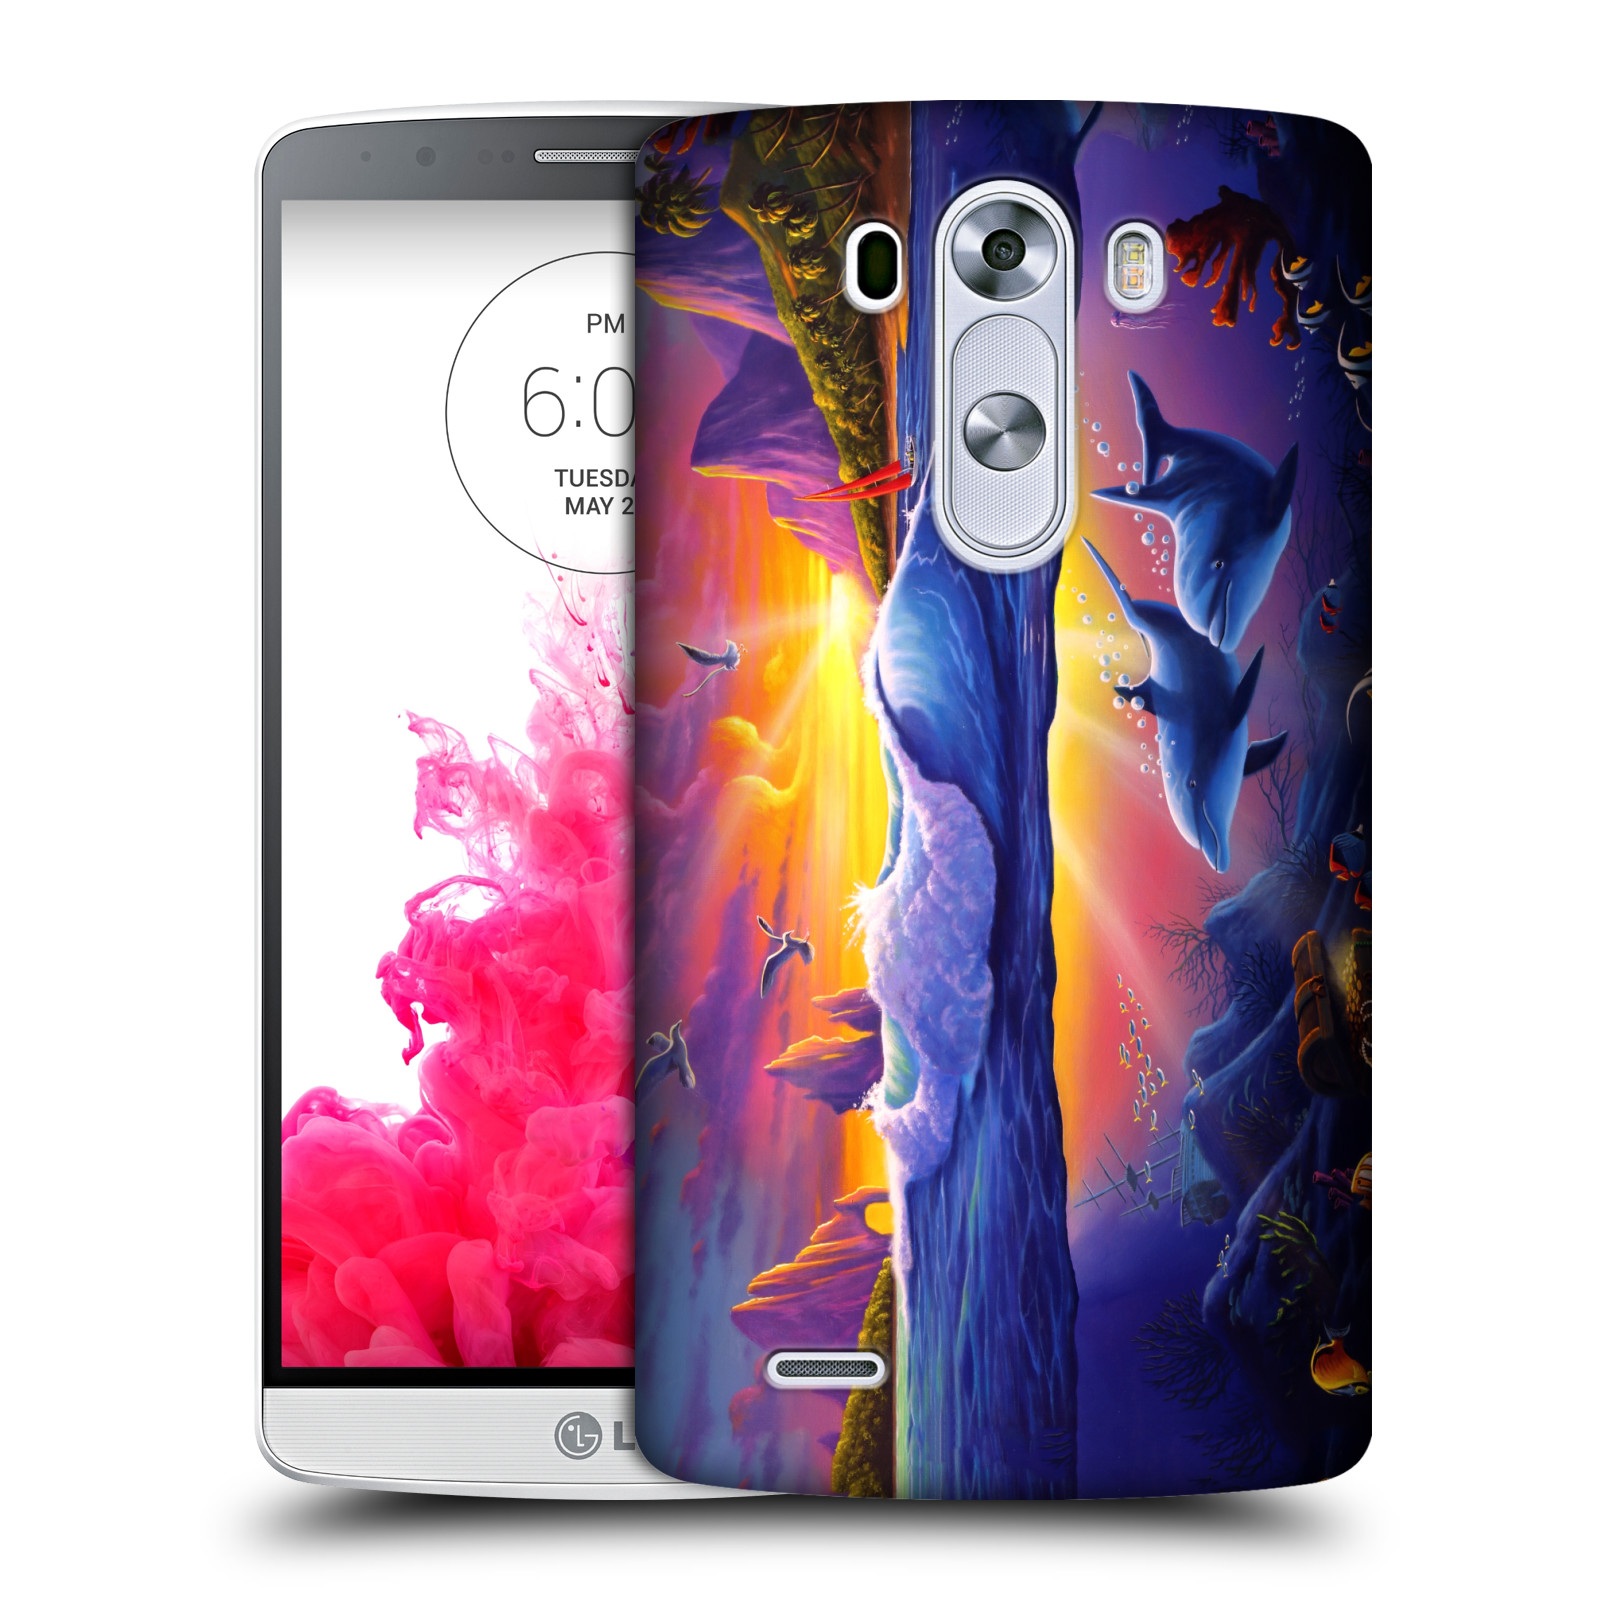 OFFICIAL-GENO-PEOPLES-ART-HOLIDAY-HARD-BACK-CASE-FOR-LG-PHONES-1